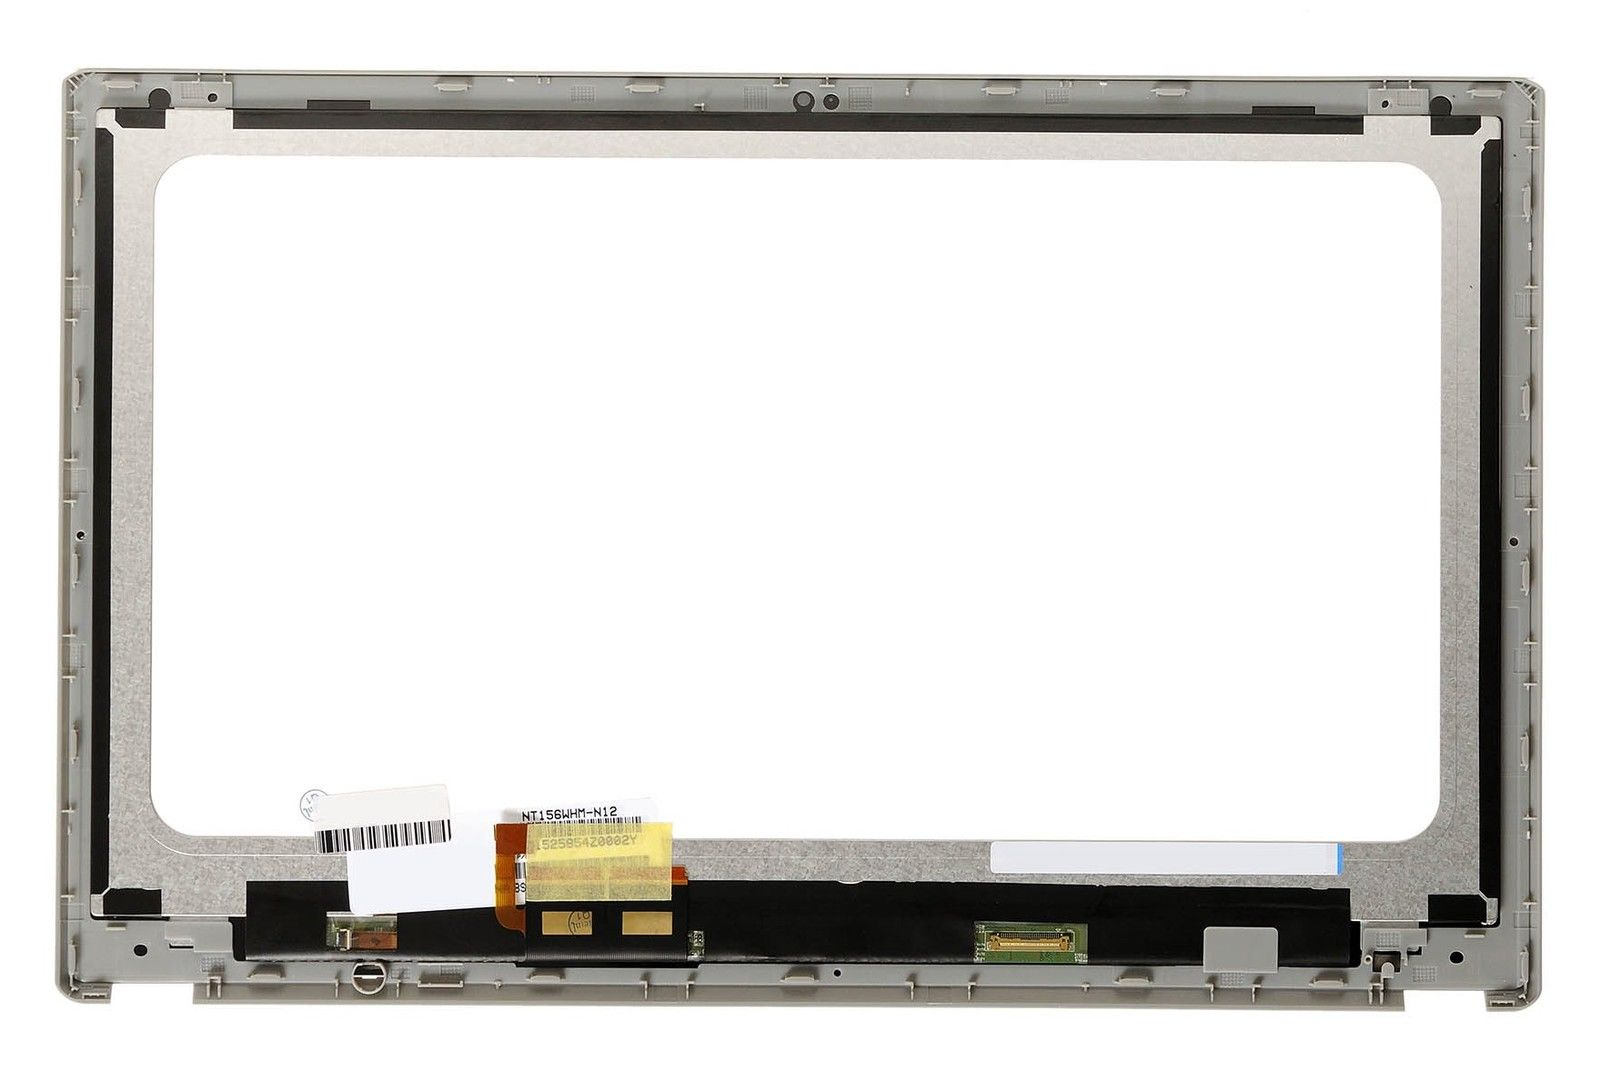 NEW! For Acer Aspire V5-571 V5 571P 15.6 Touch LCD LED Screen Digitizer Glass With Bezel Assembly gread a 15 6 lcd touch screen digitizer full assembly display for acer aspire v5 571 v5 571p v5 571pg front bezel 1366 768